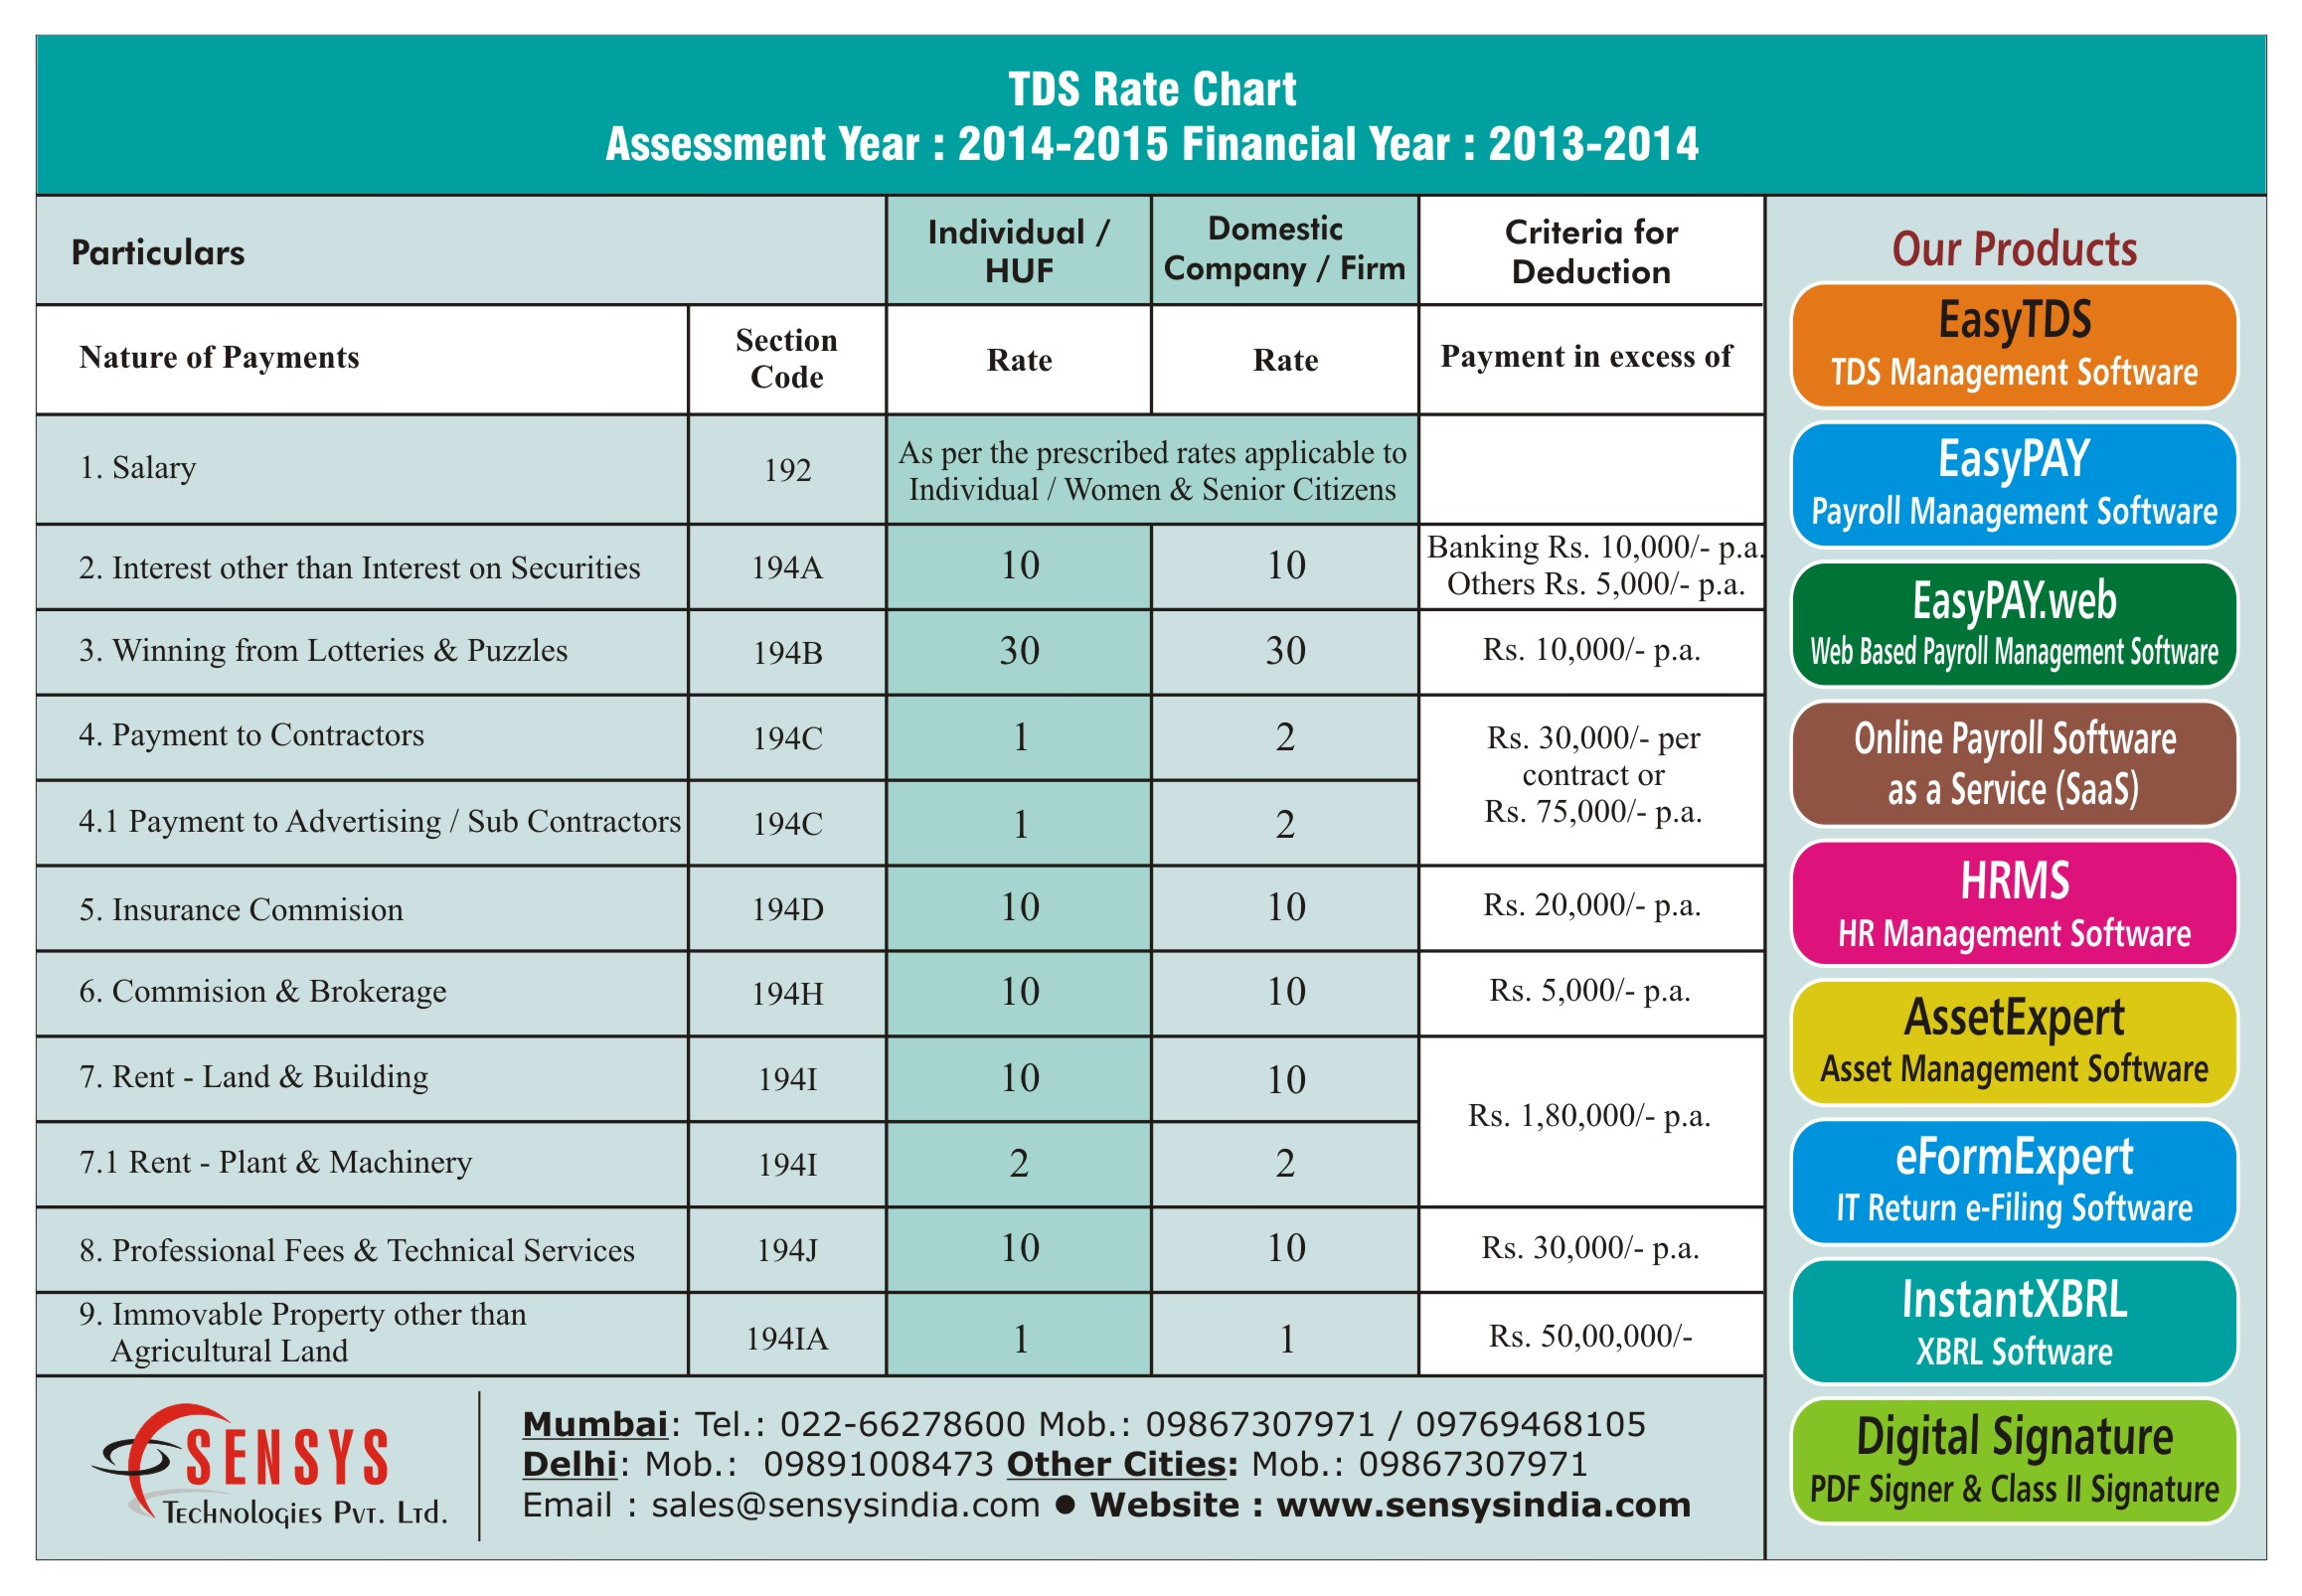 TDS Rate Chart Assessment Year 2014-2015